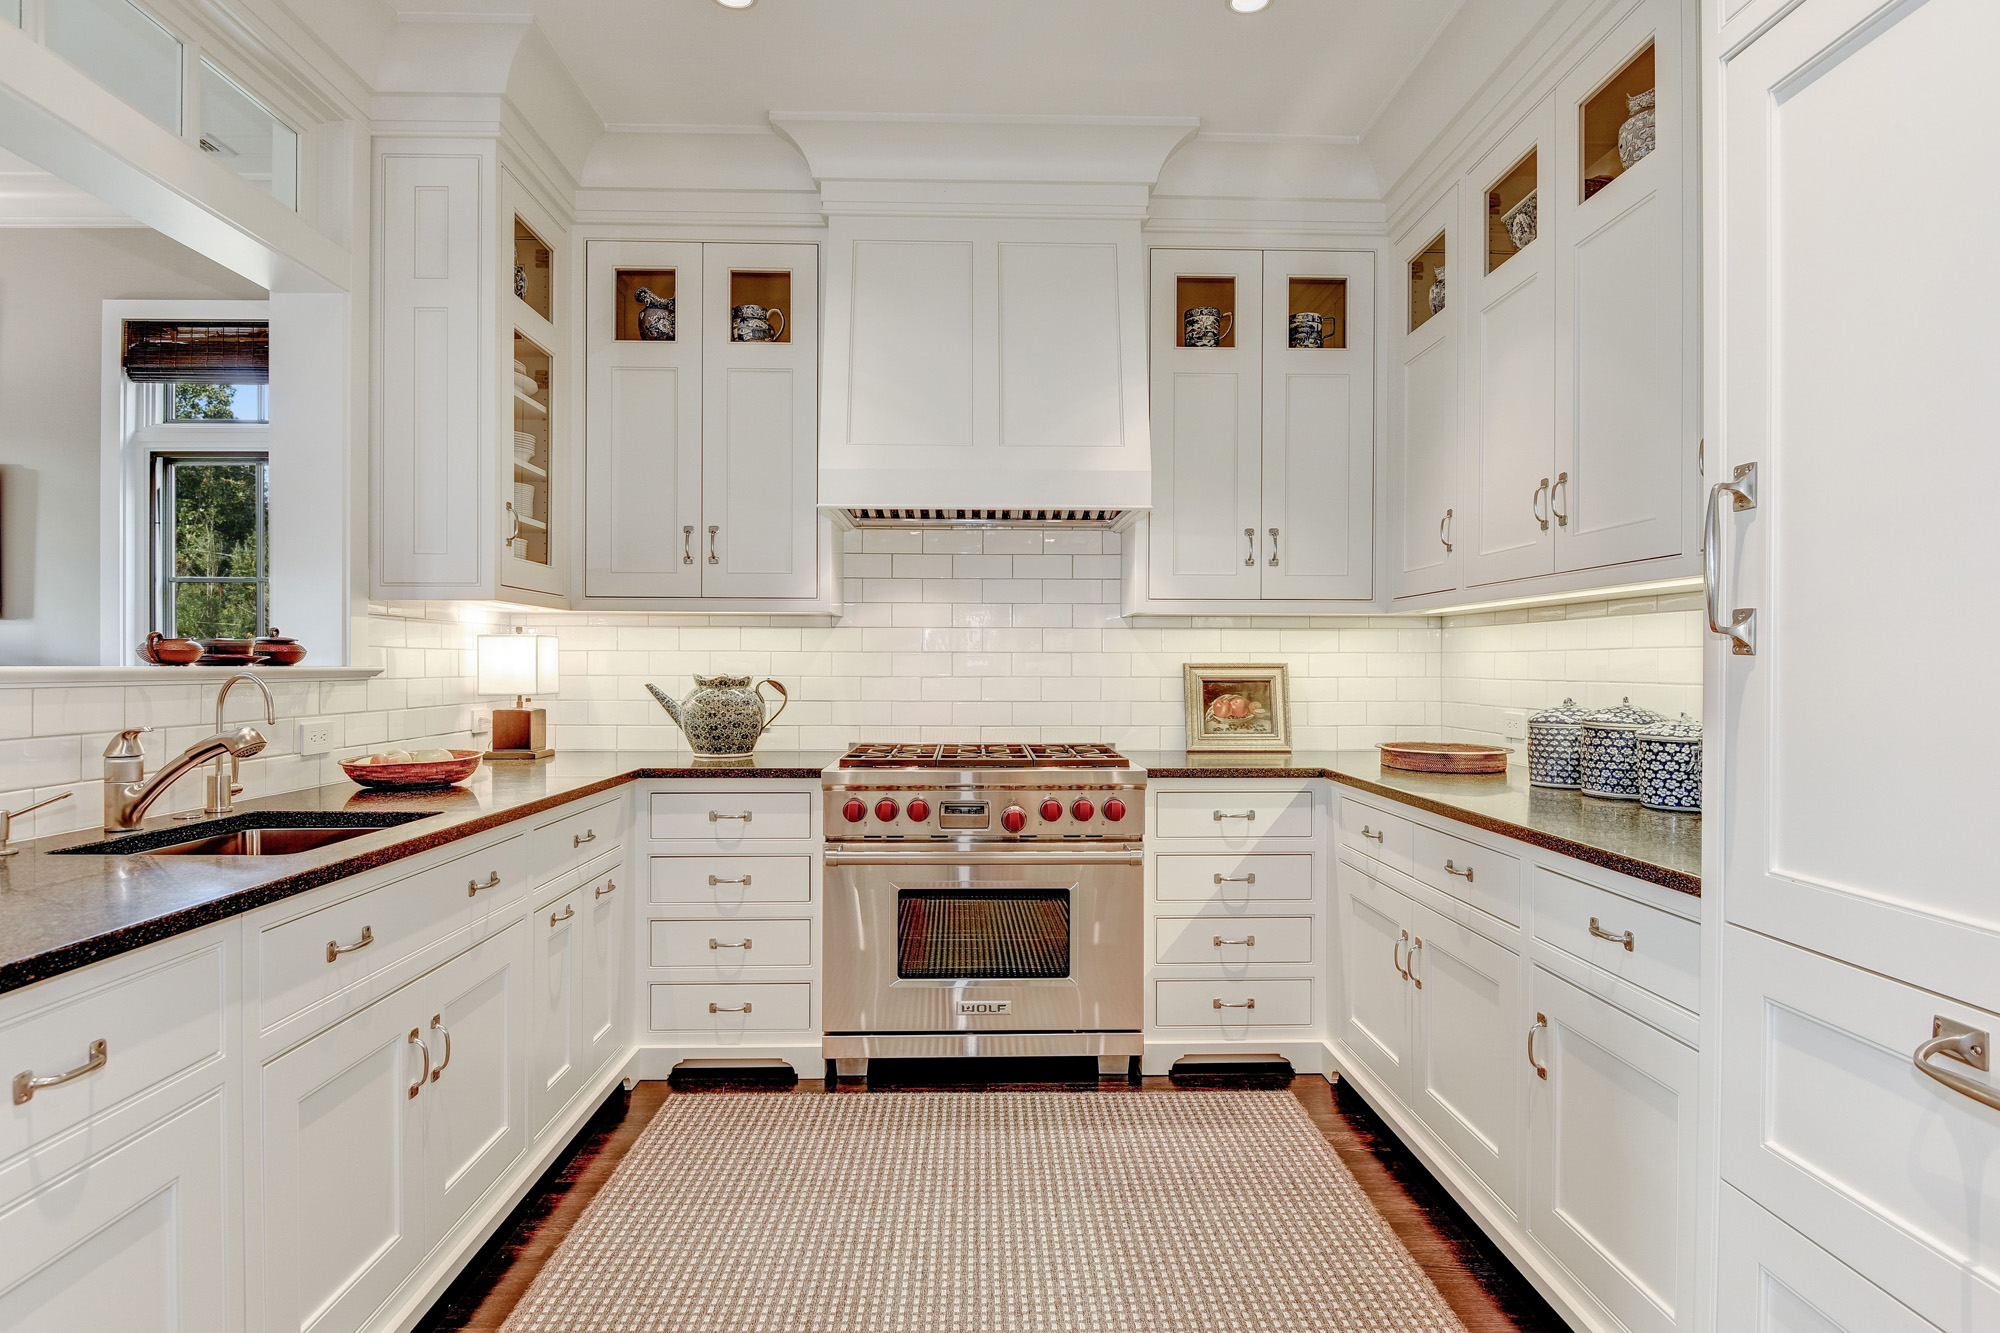 Kitchens, Breakfast & Dining Rooms Photo Gallery | BOWA | Design ...